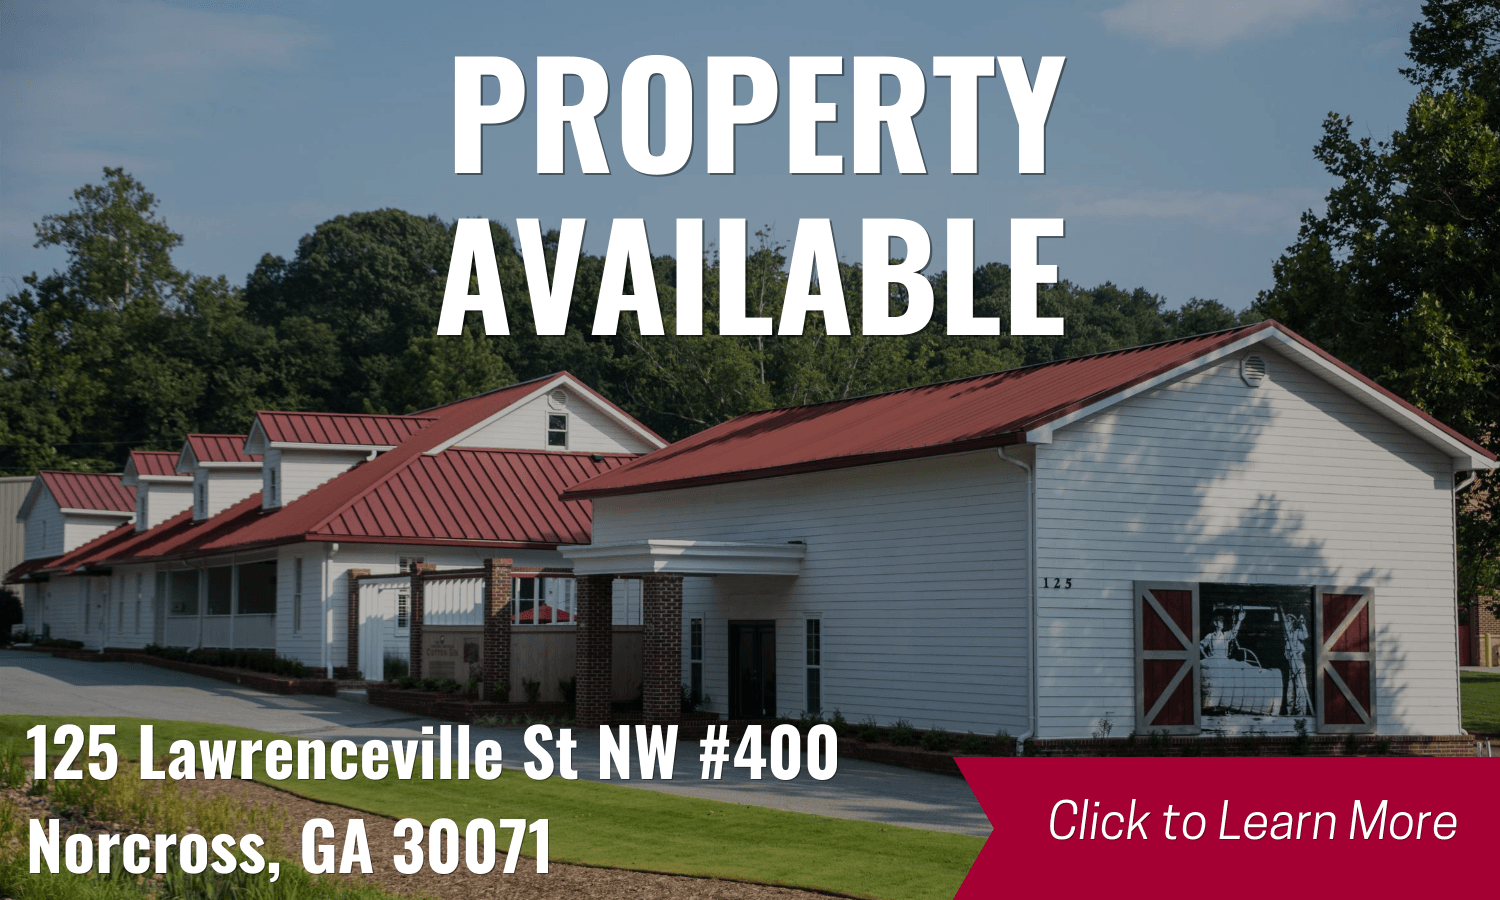 PROPERTY AVAILABLE: 125 Lawrenceville St, Suite 400, Click to learn more